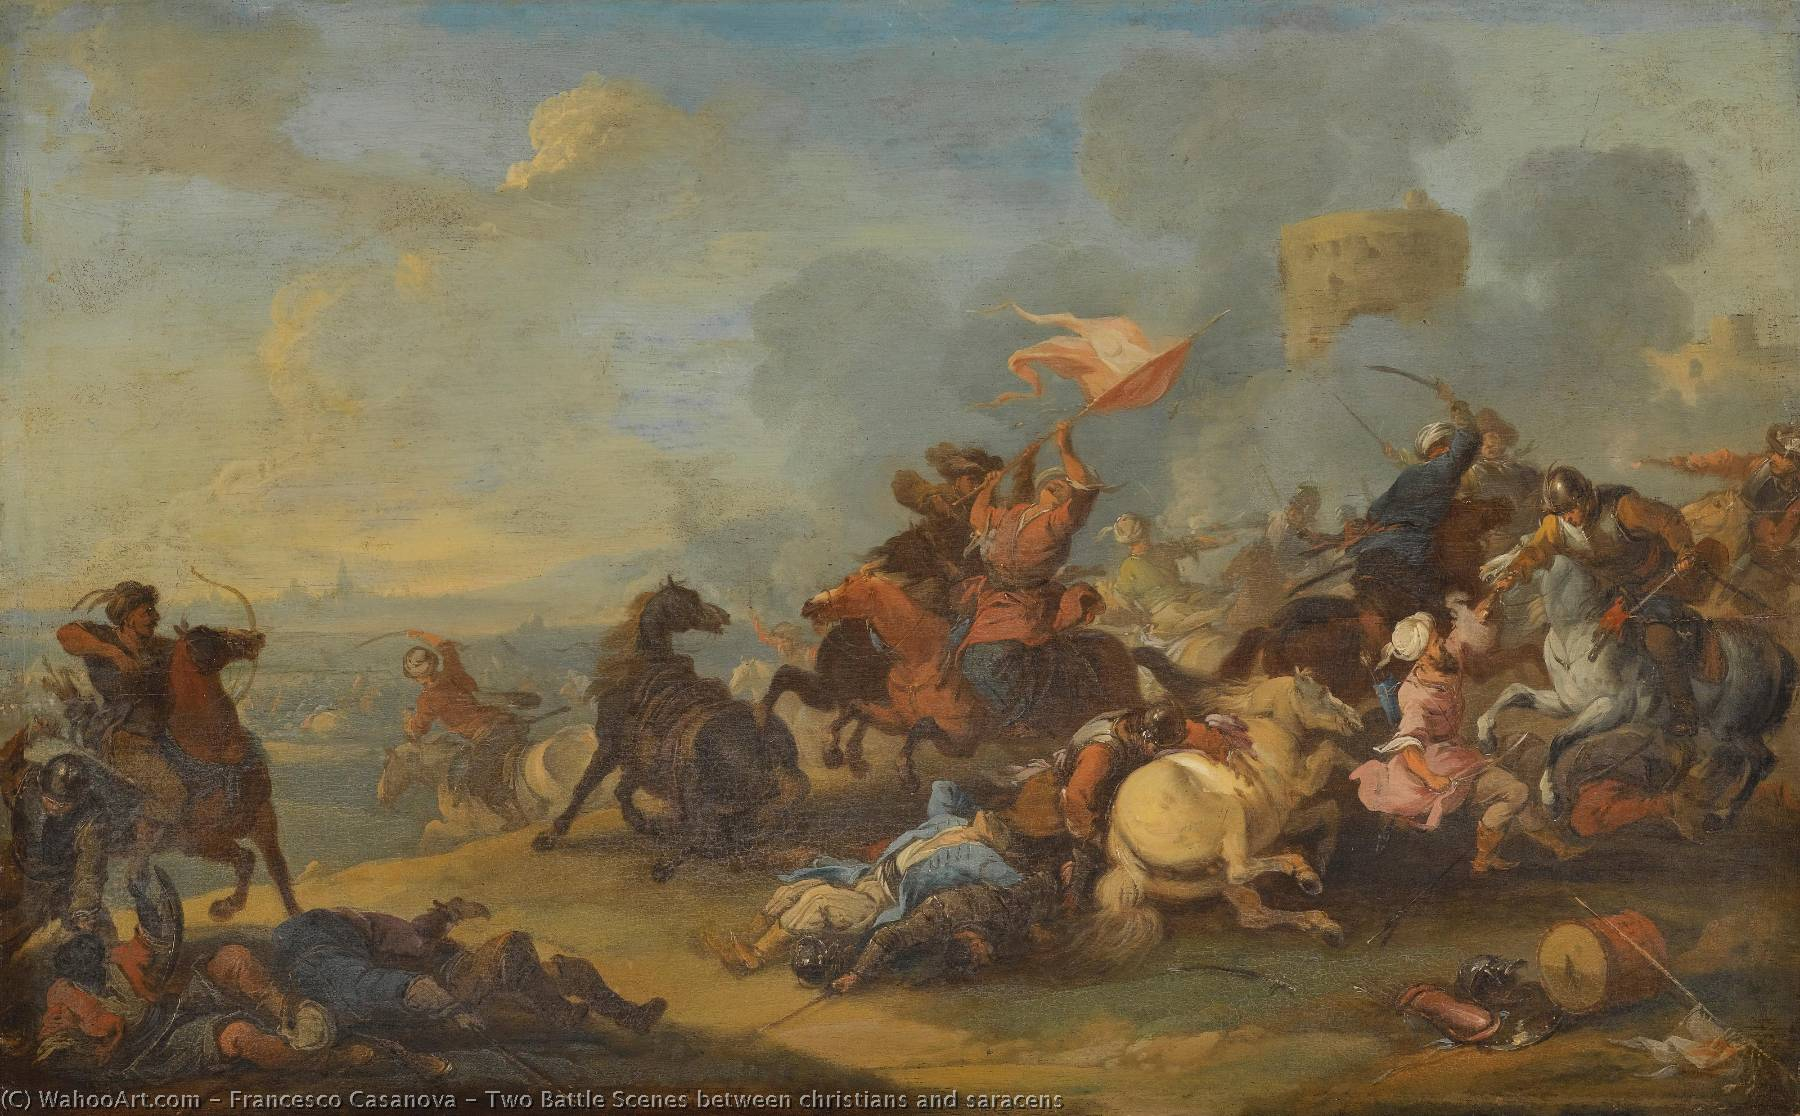 Wikioo.org - The Encyclopedia of Fine Arts - Painting, Artwork by Francesco Casanova - Two Battle Scenes between christians and saracens